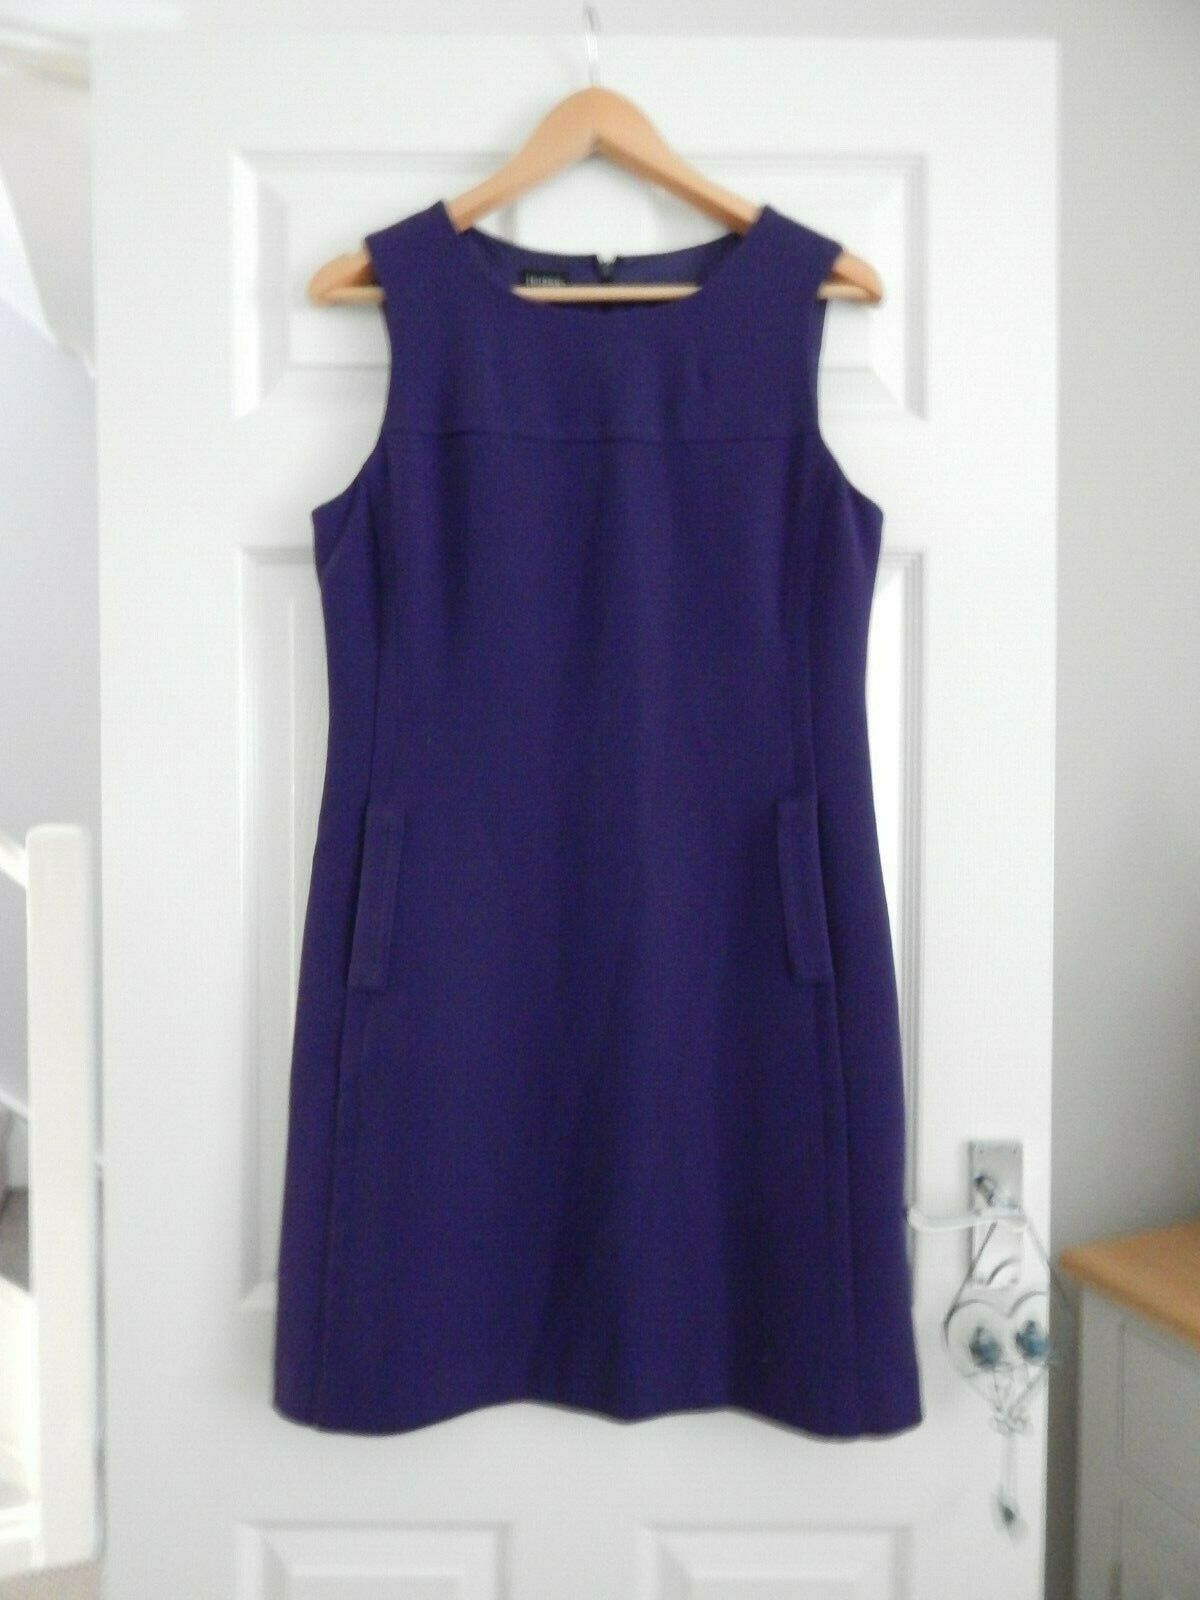 HOBBS PURPLE LINED DRESS 12